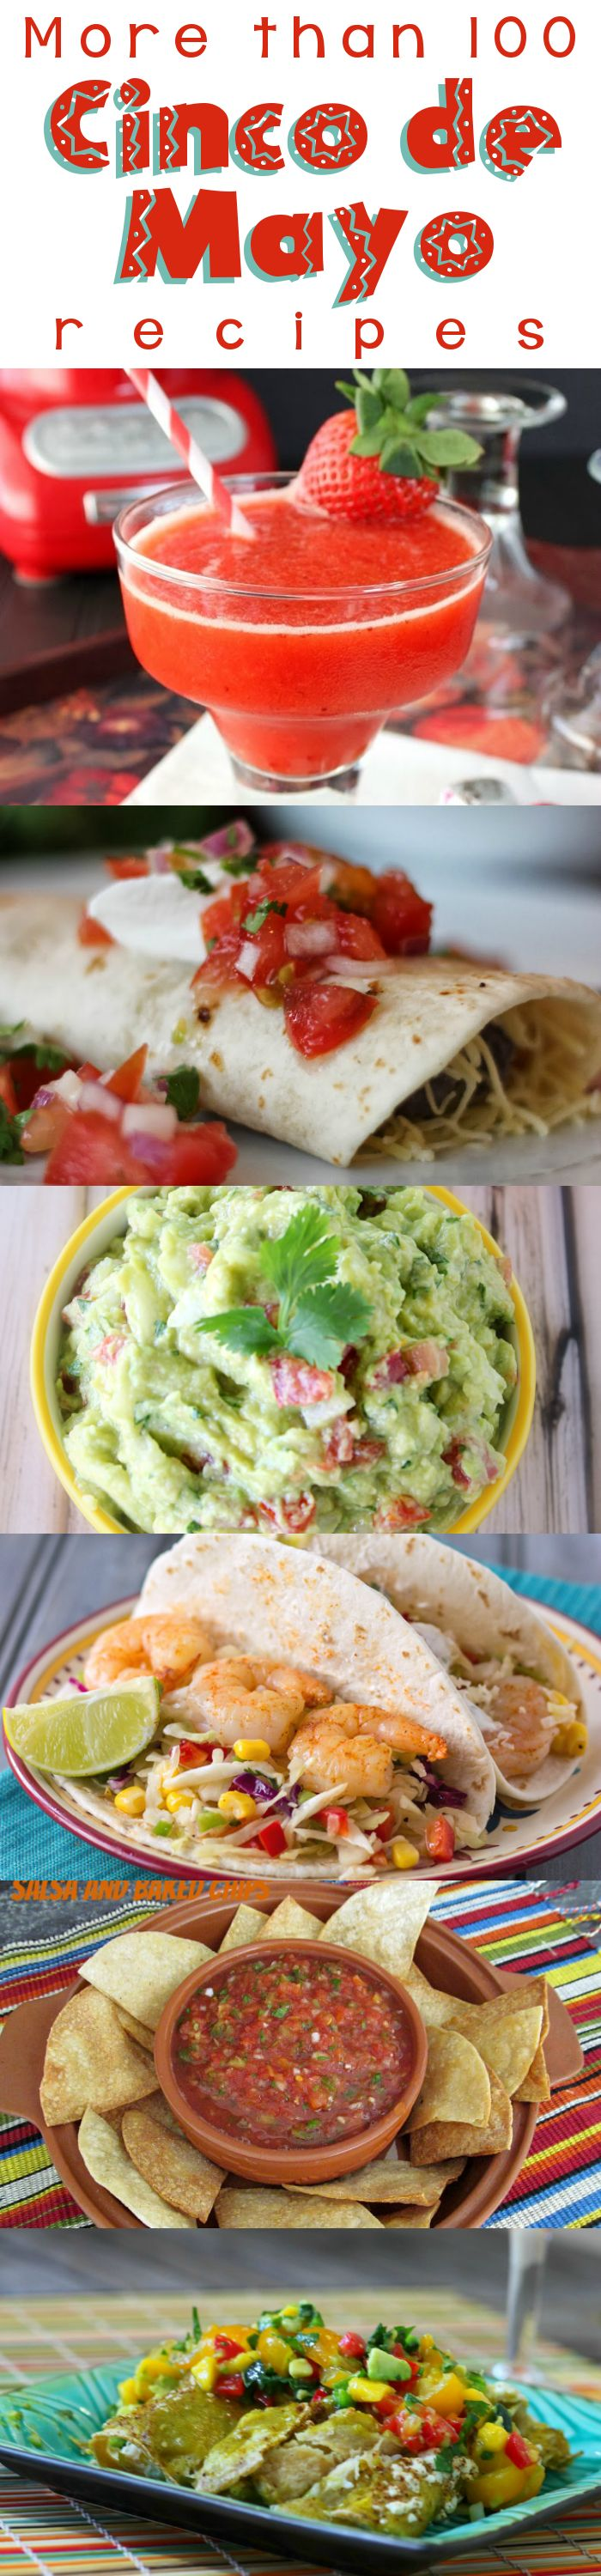 Cinco de Mayo Round-Up - More than 100 Mexican/Tex-Mex recipes from your favorite food bloggers! #CincoDeMayo #Mexican #roundup